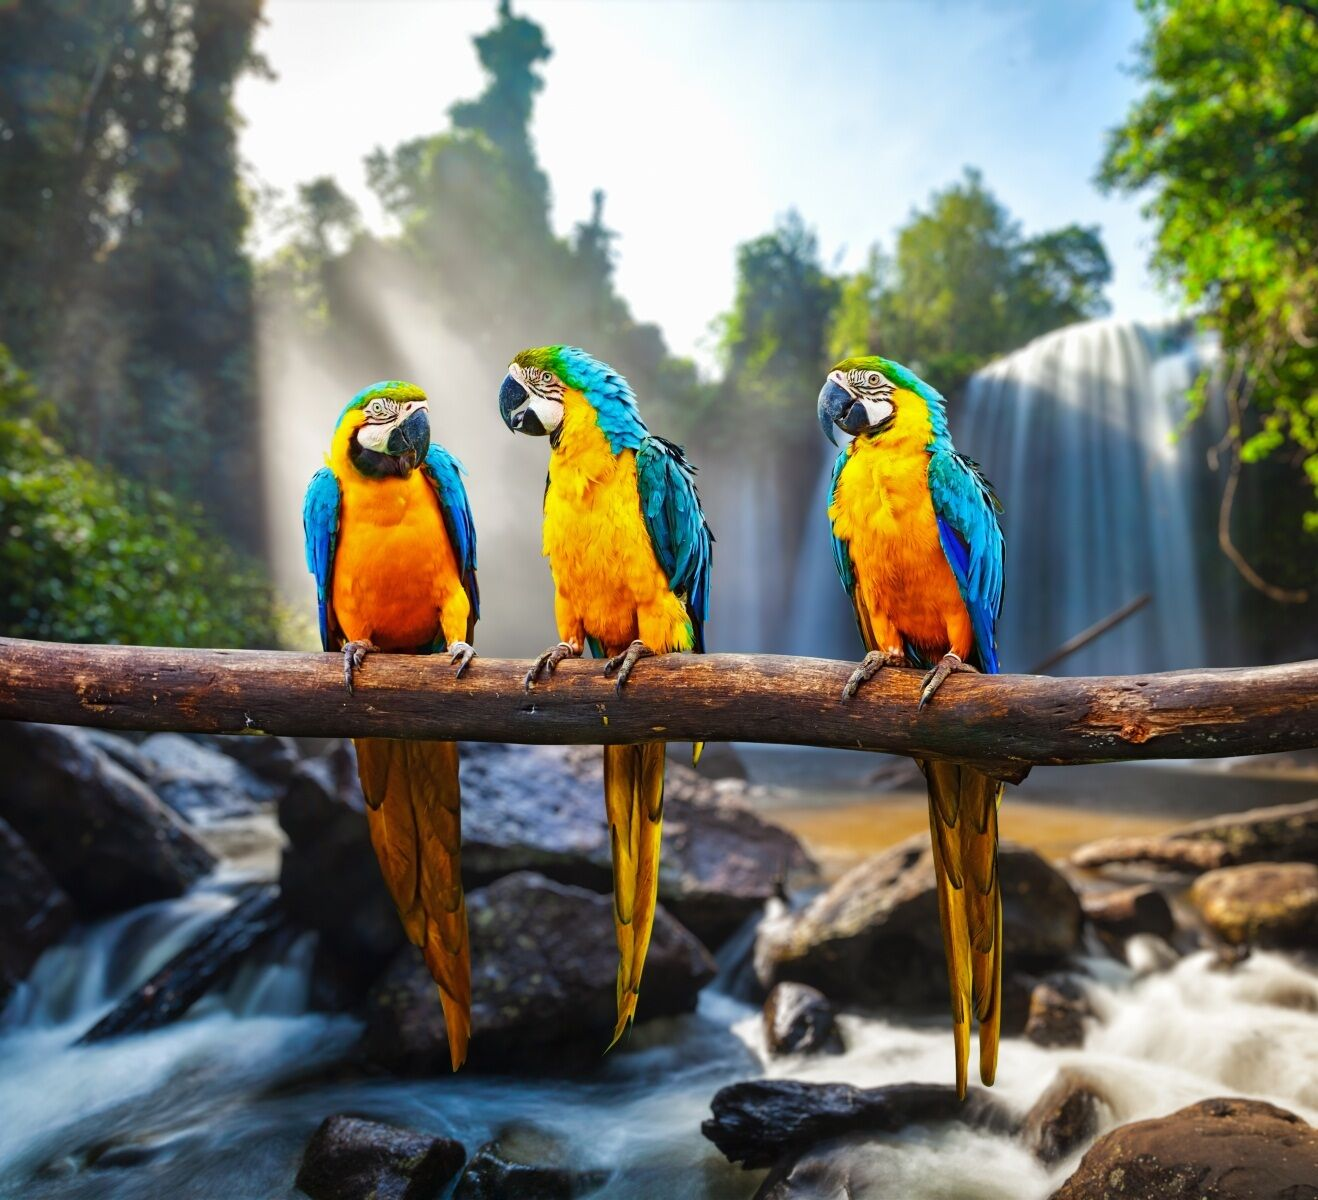 3D Waterfall Birds 101 WallPaper Murals Wall Print Decal Wall Deco AJ WALLPAPER